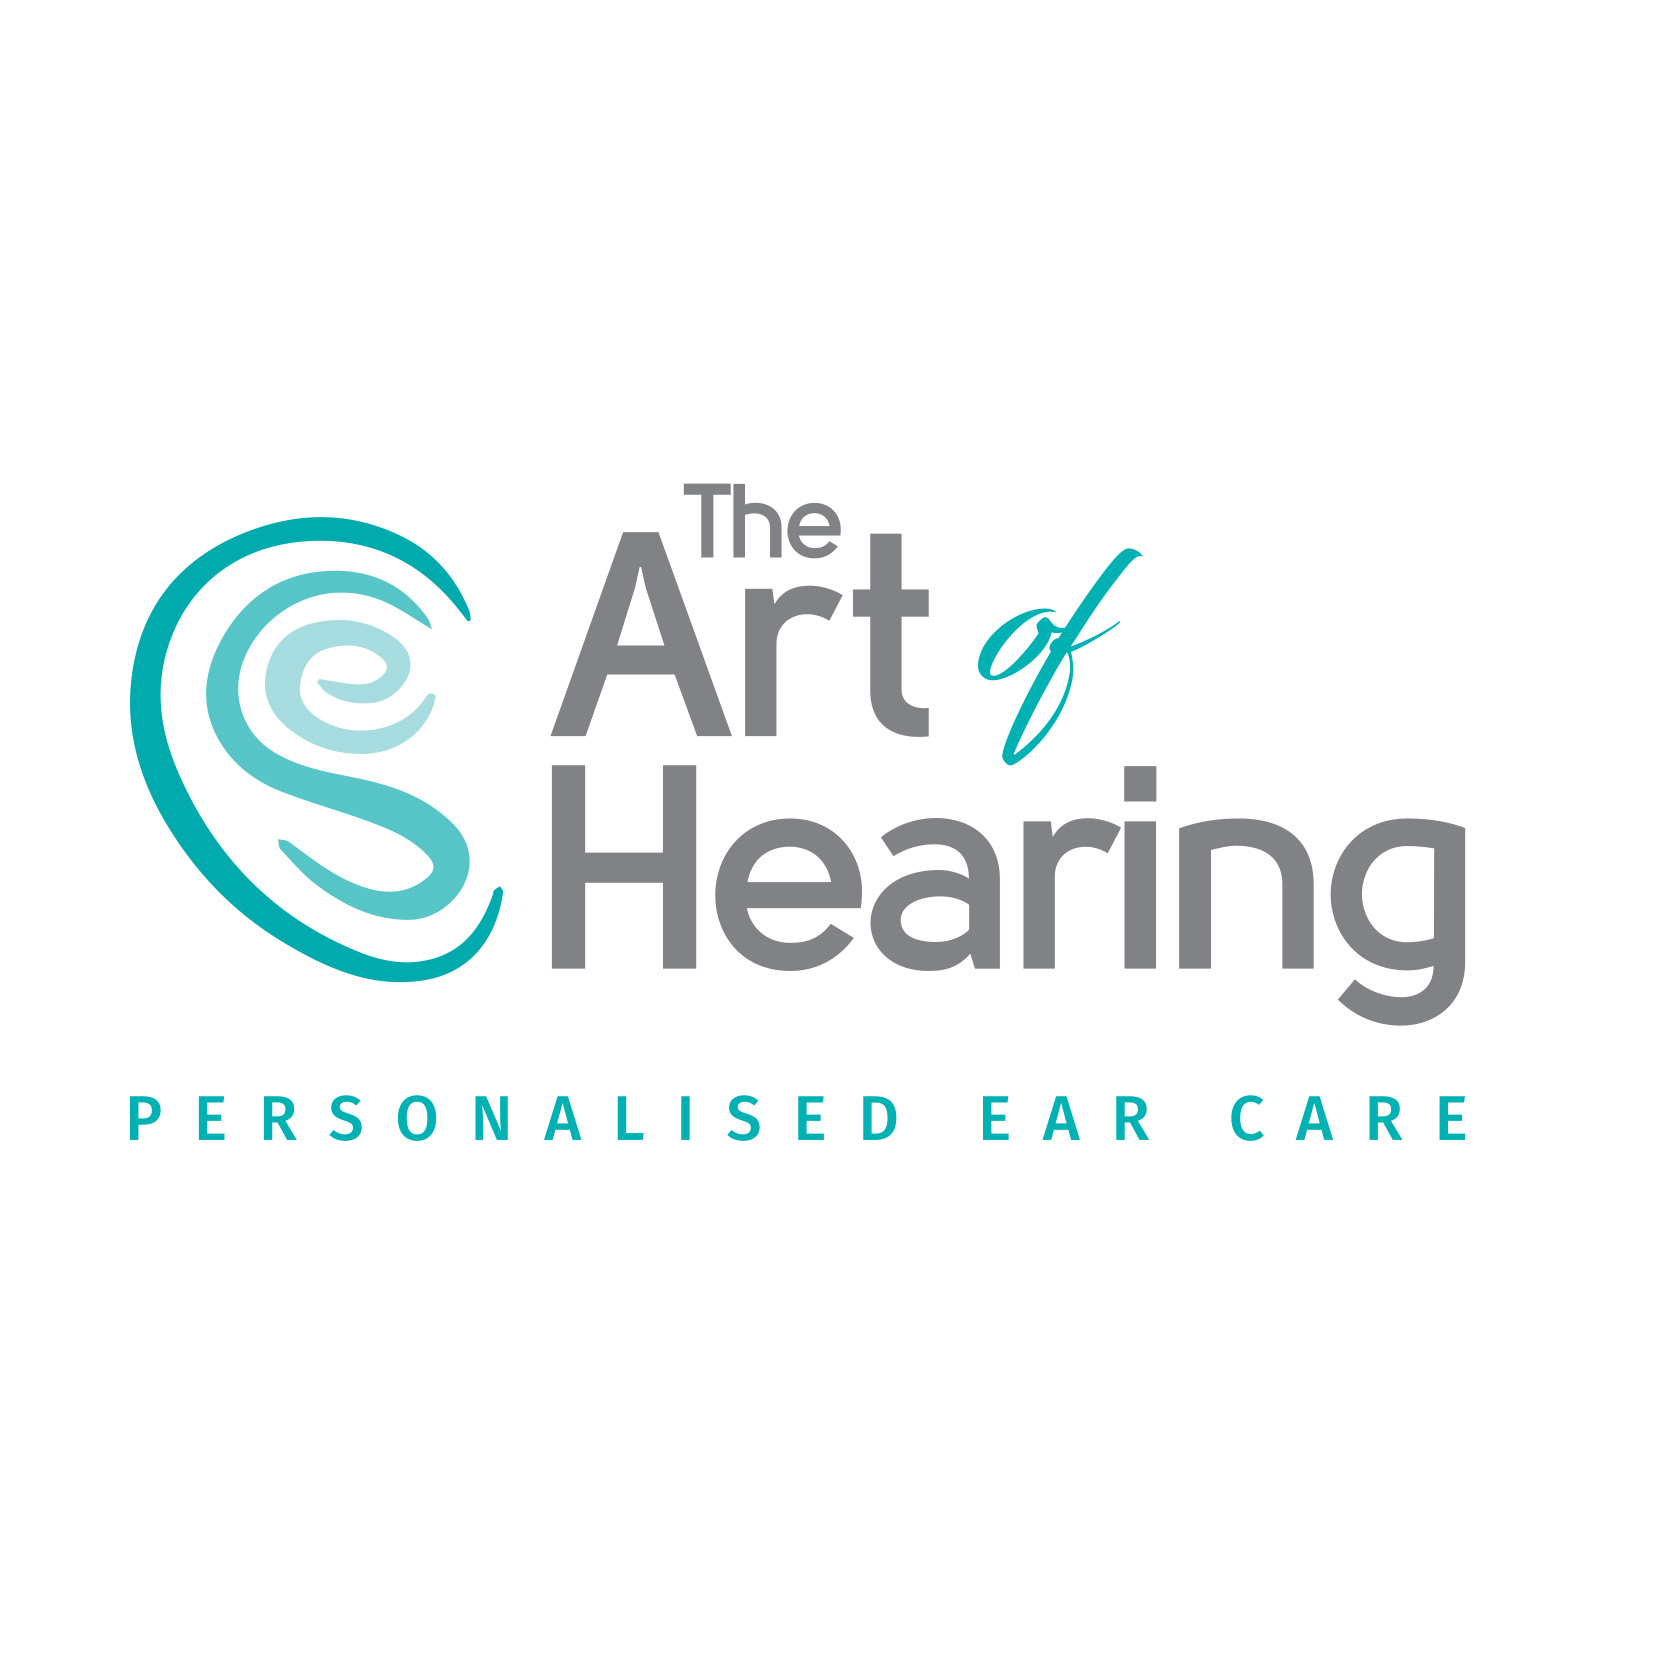 The Art of Hearing Limited